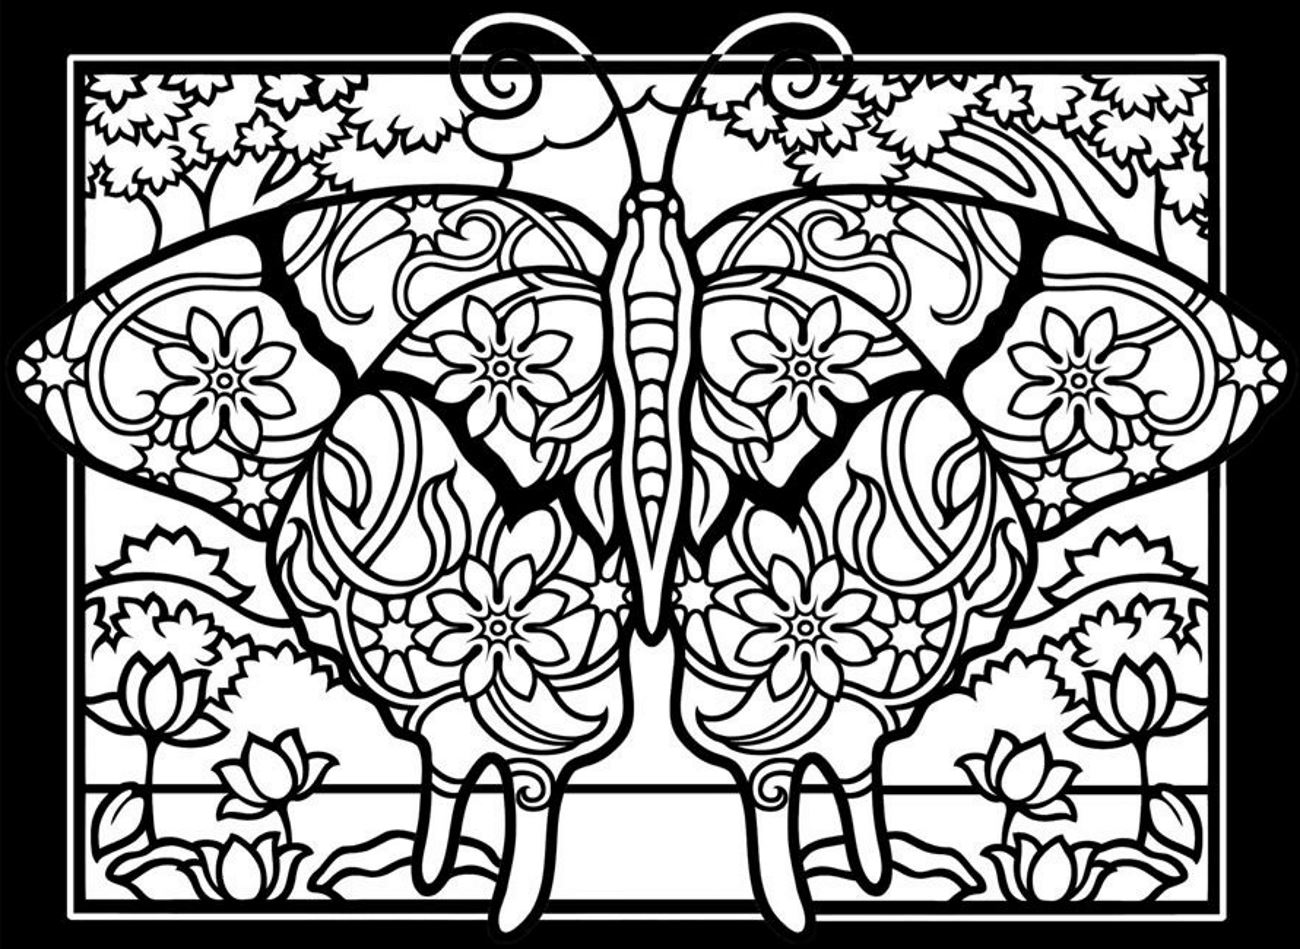 black and white coloring pages for adults free roses printable adult coloring page the graphics fairy coloring for and pages adults white black